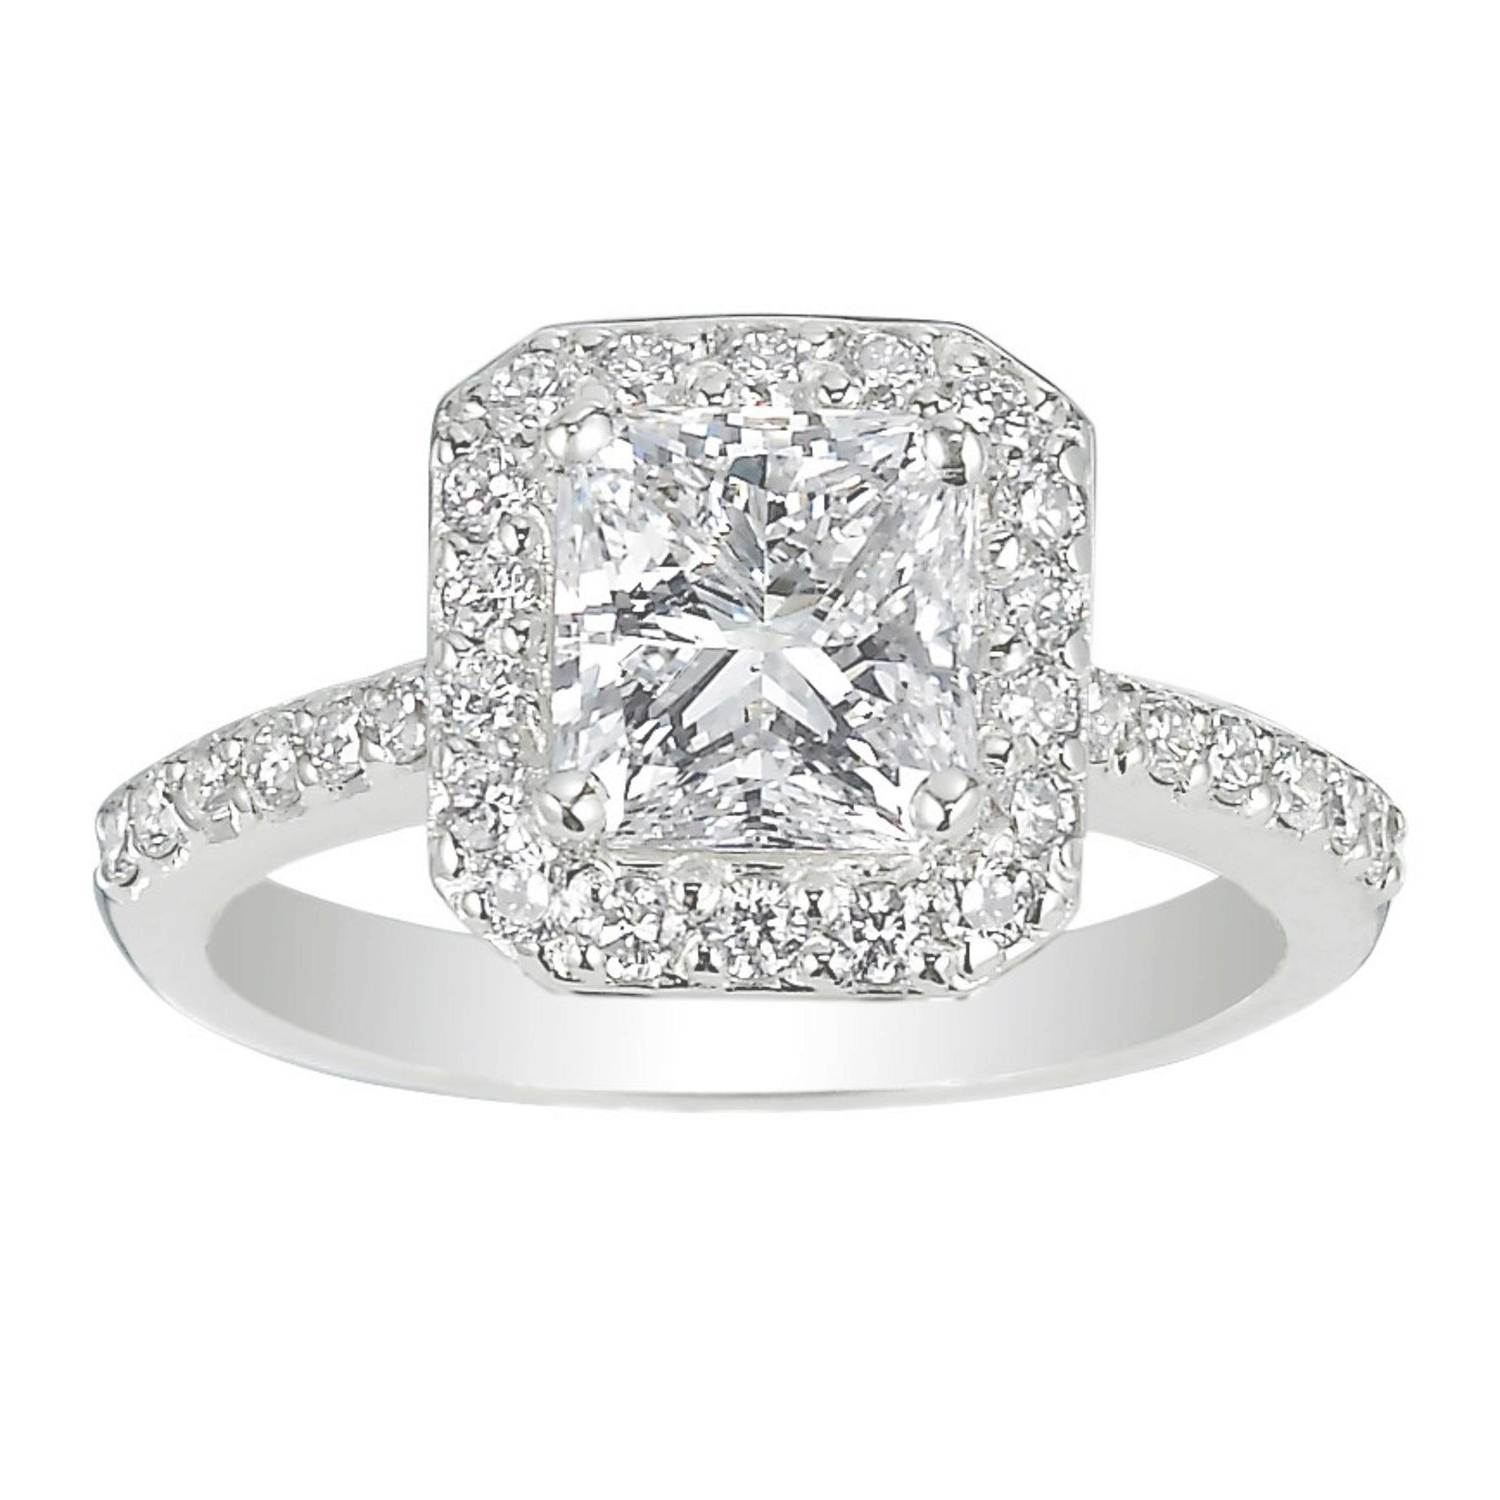 Download 1 Million Dollar Wedding Ring | Wedding Corners With Regard To 1 Million Dollar Engagement Rings (View 3 of 15)